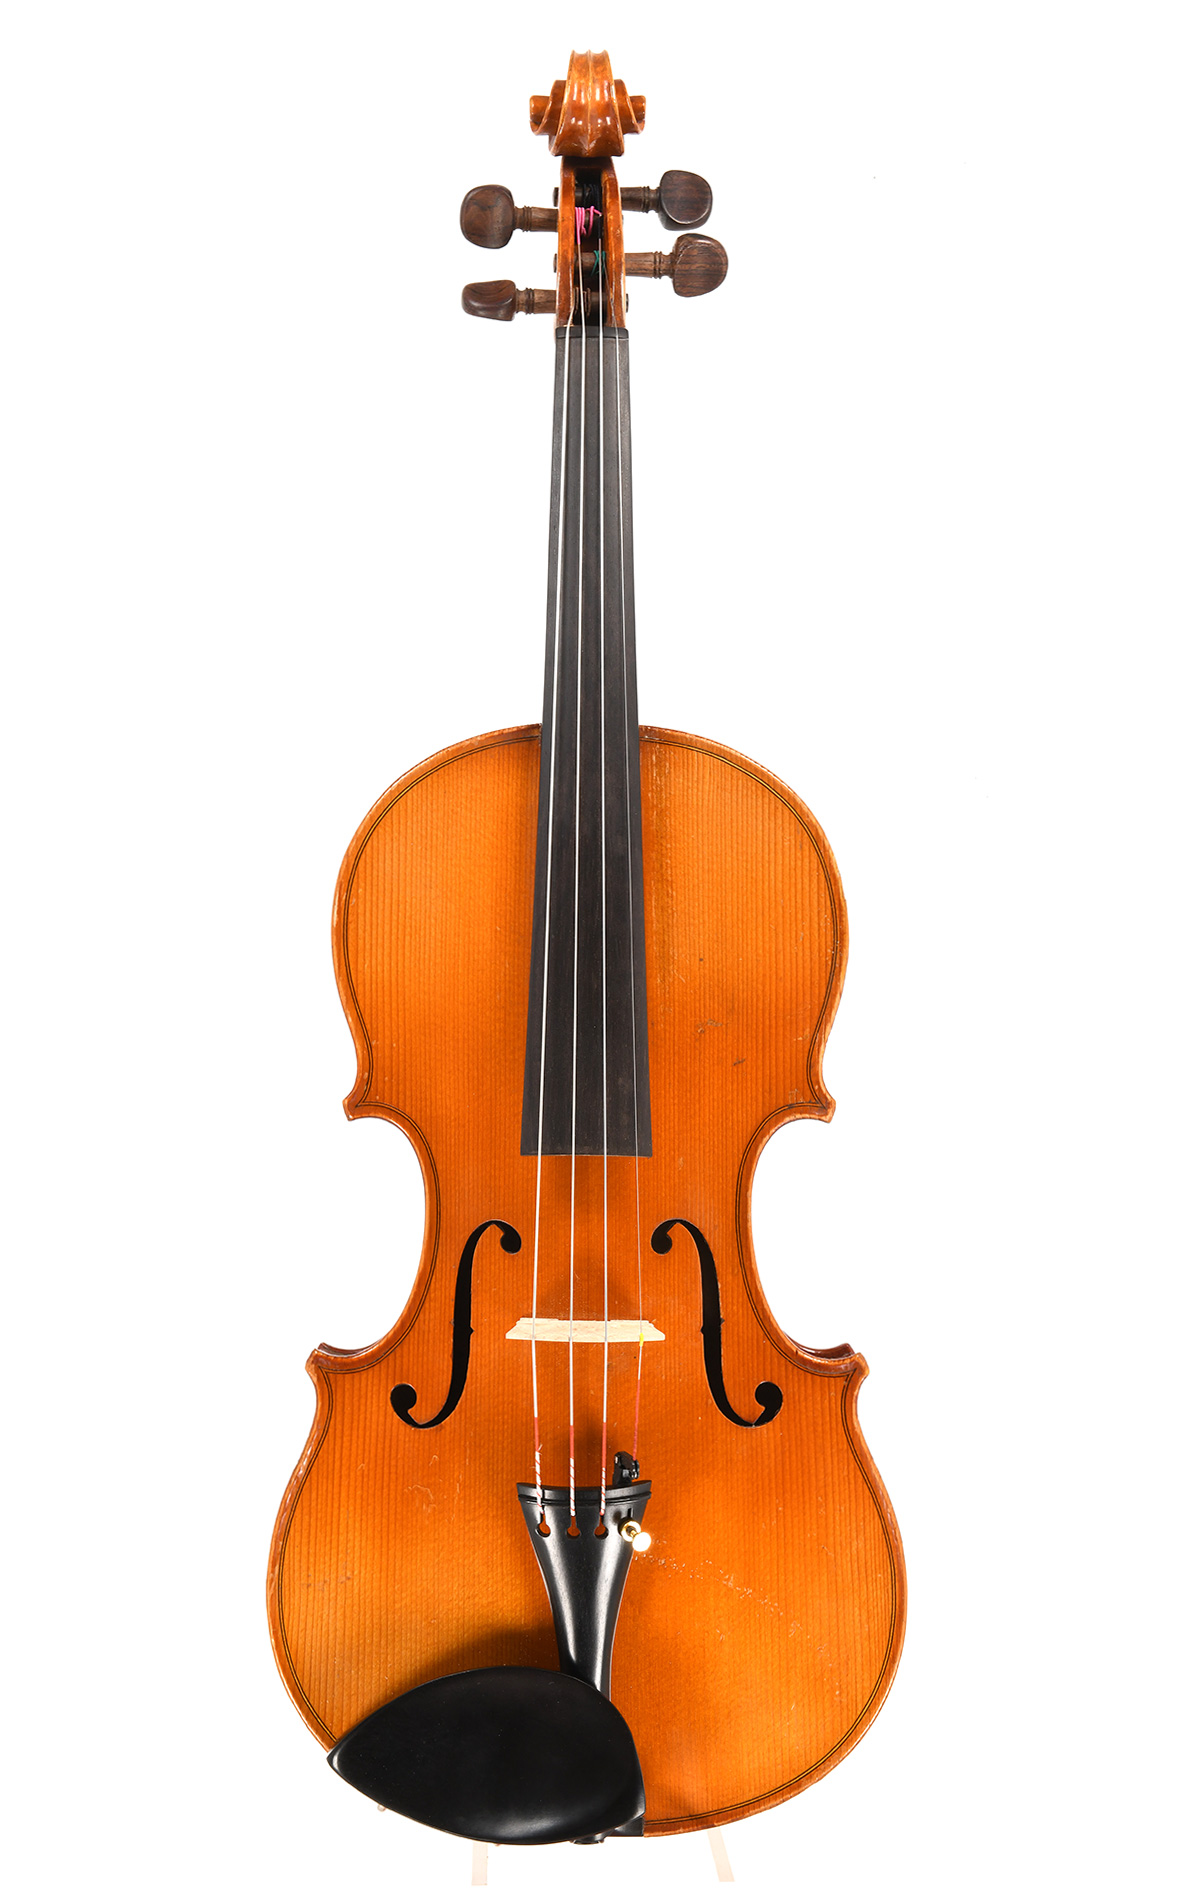 French violin made in the Atelier Laberte, Mirecourt, approx. 1940